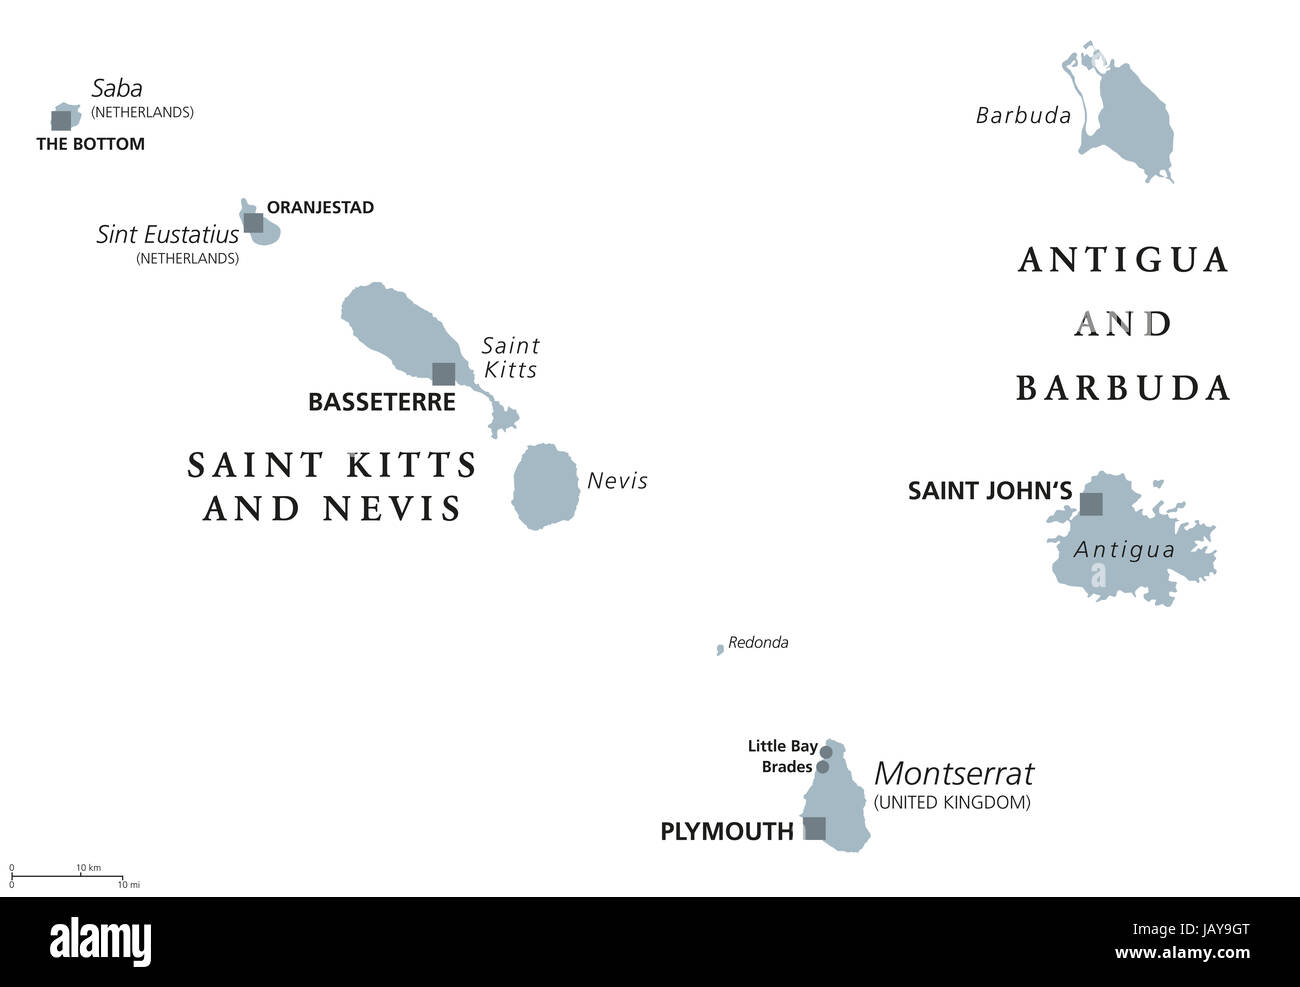 Saint Kitts And Nevis, Antigua And Barbuda, Montserrat, Saba ... on in texas map, in asia map, in mexico map, in sweden map, in france map, in georgia map, in germany map, in china map, in usa map, in latin america map,